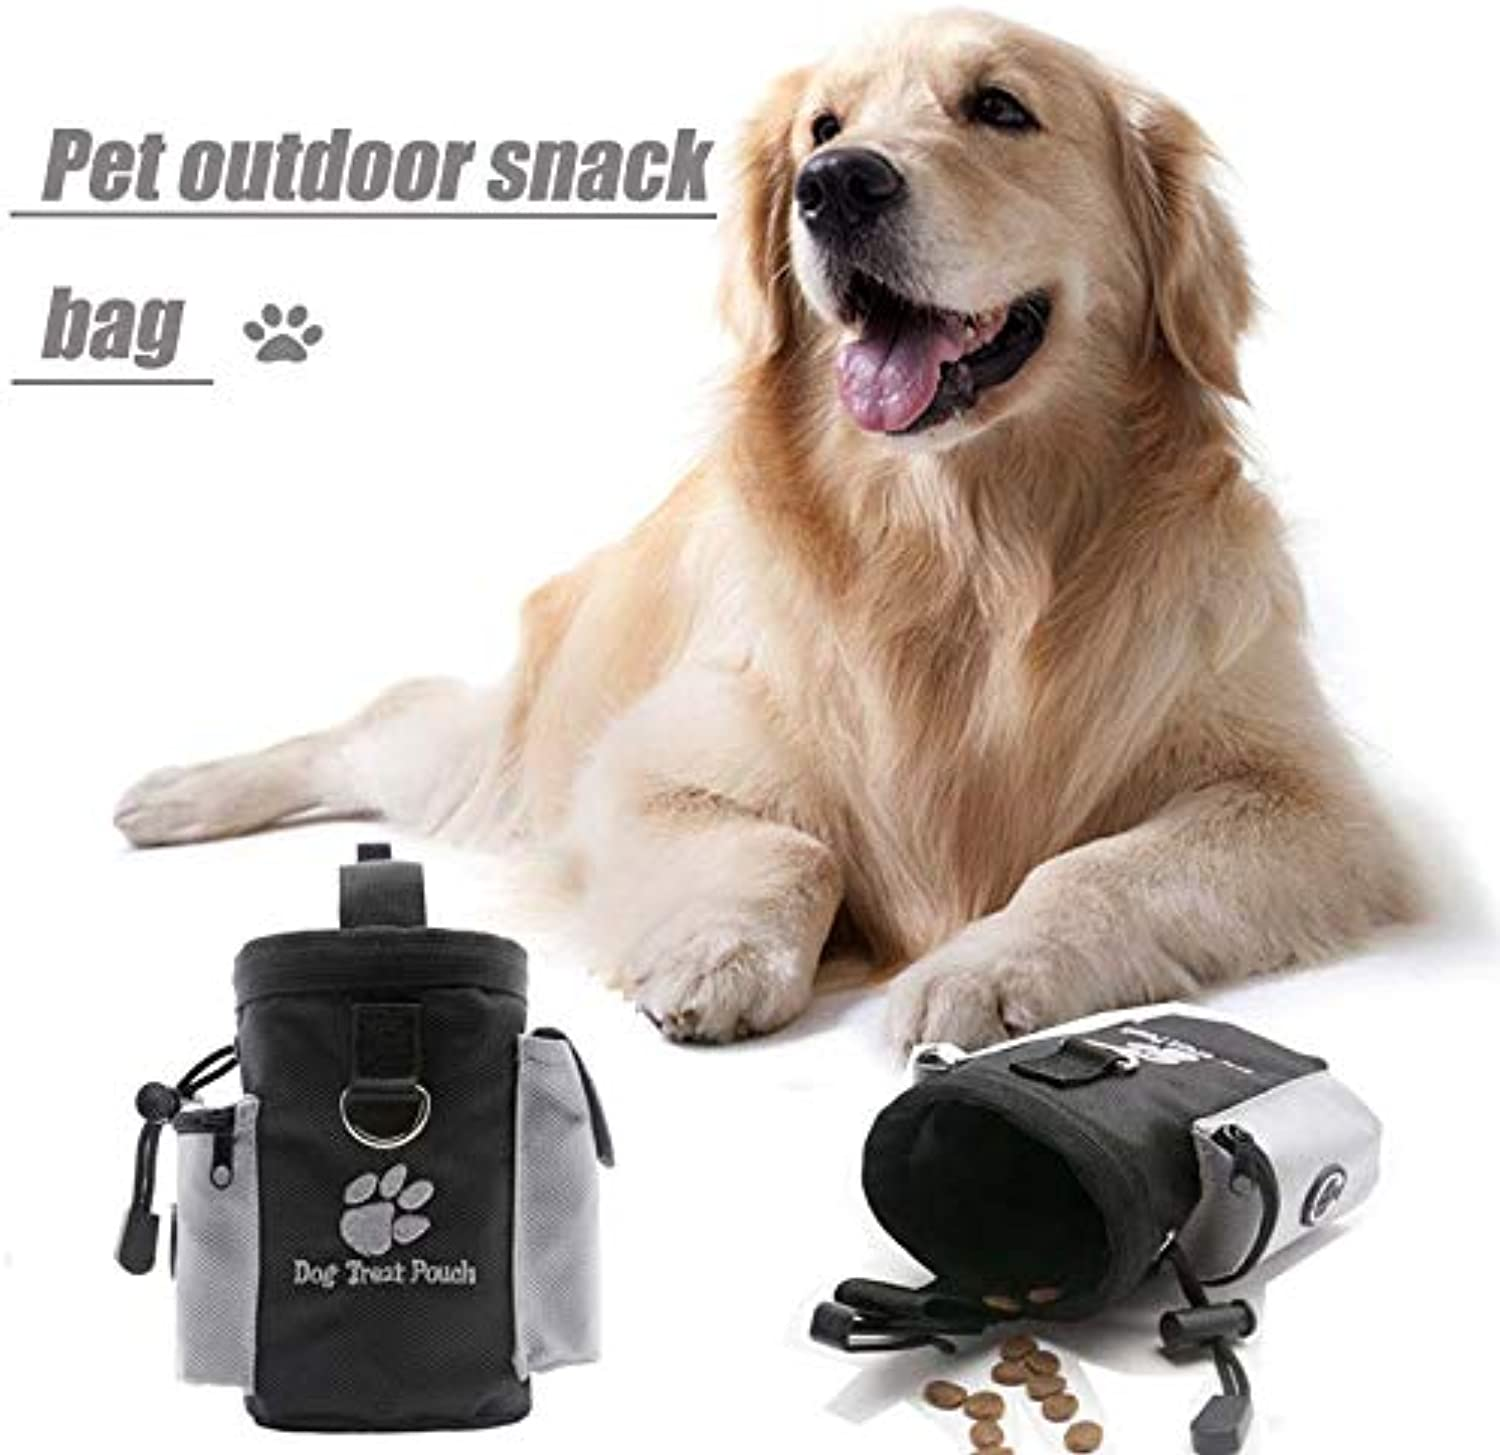 Pet Out Snack Bag,Pet Snack Bag Dog Training Bag,Pet Out Snack Container Sports Running Drawstring Waist Pocket